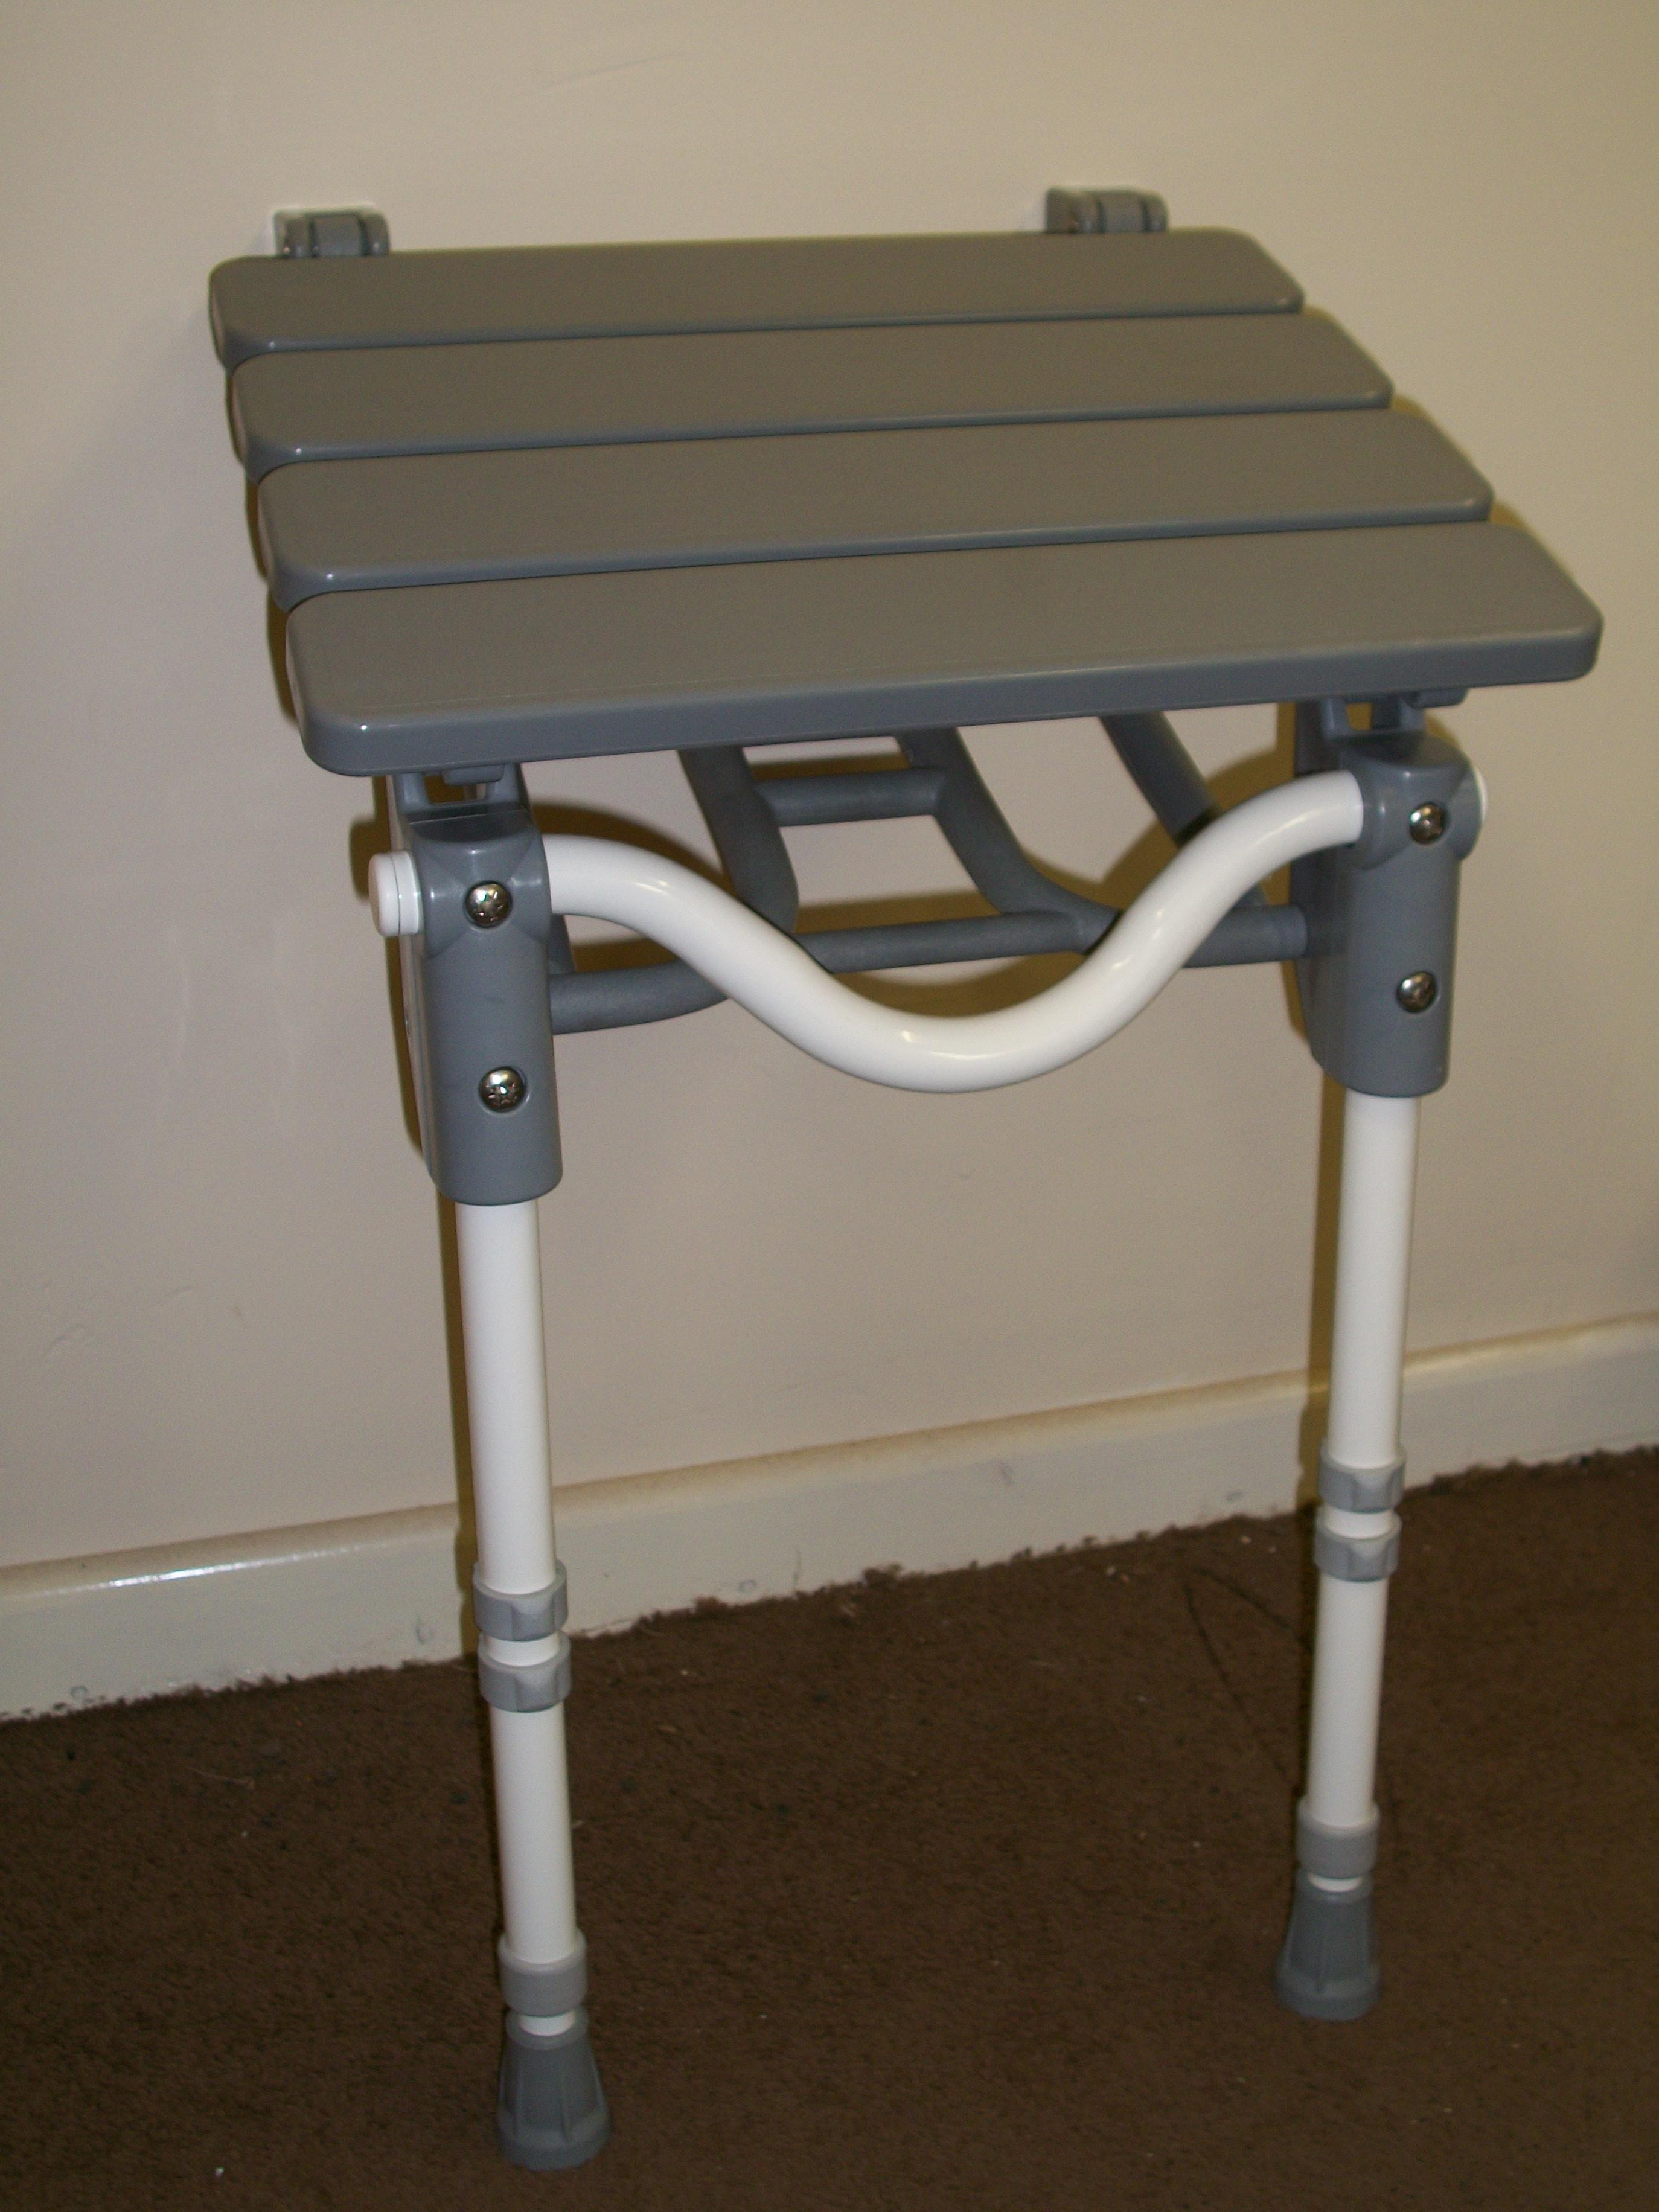 Folding Shower Seat - Slatted